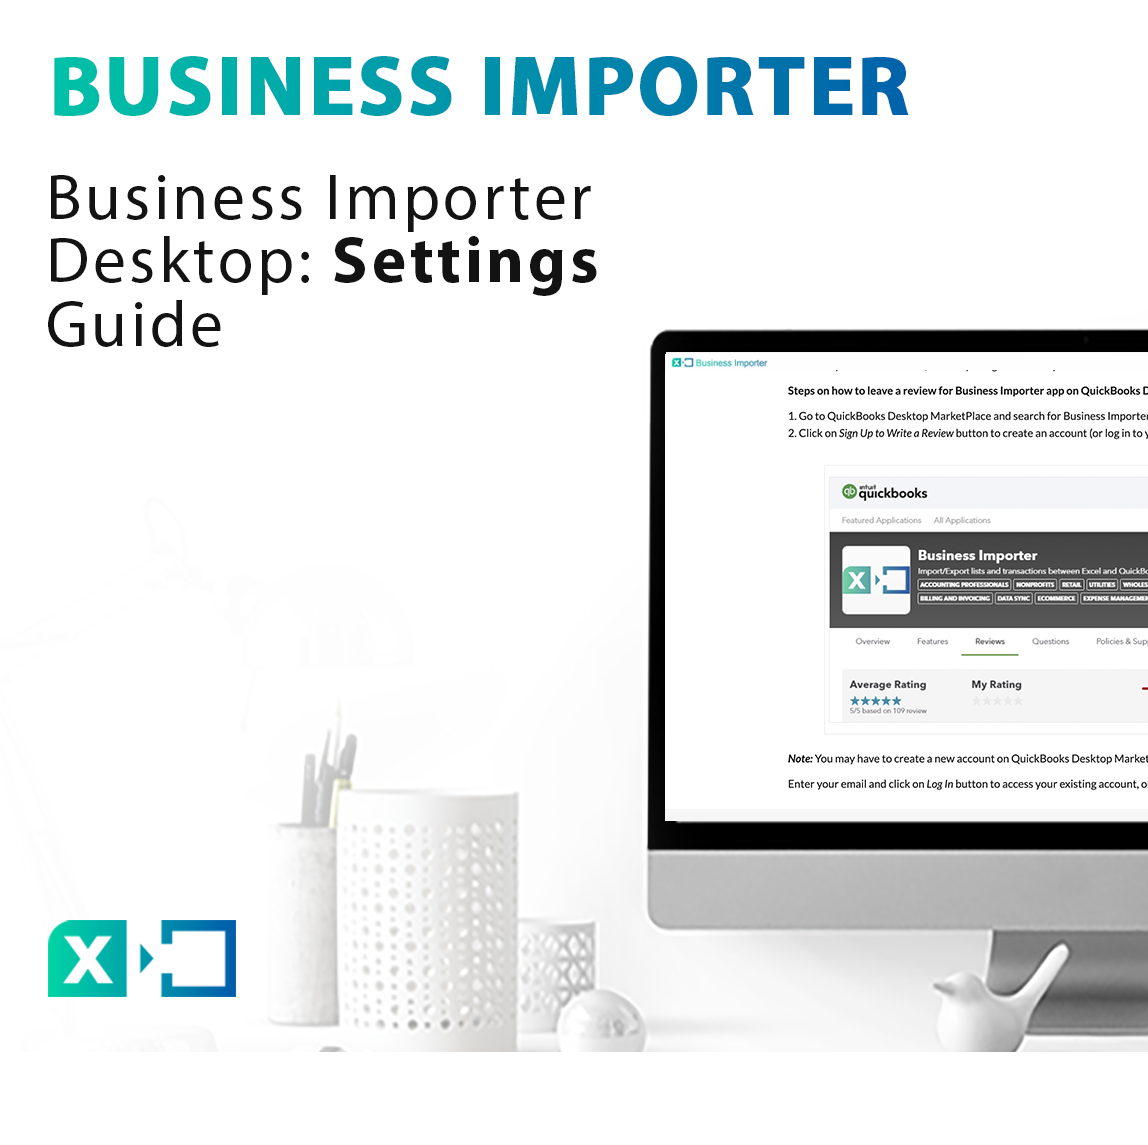 Business Importer Desktop: Settings Guide